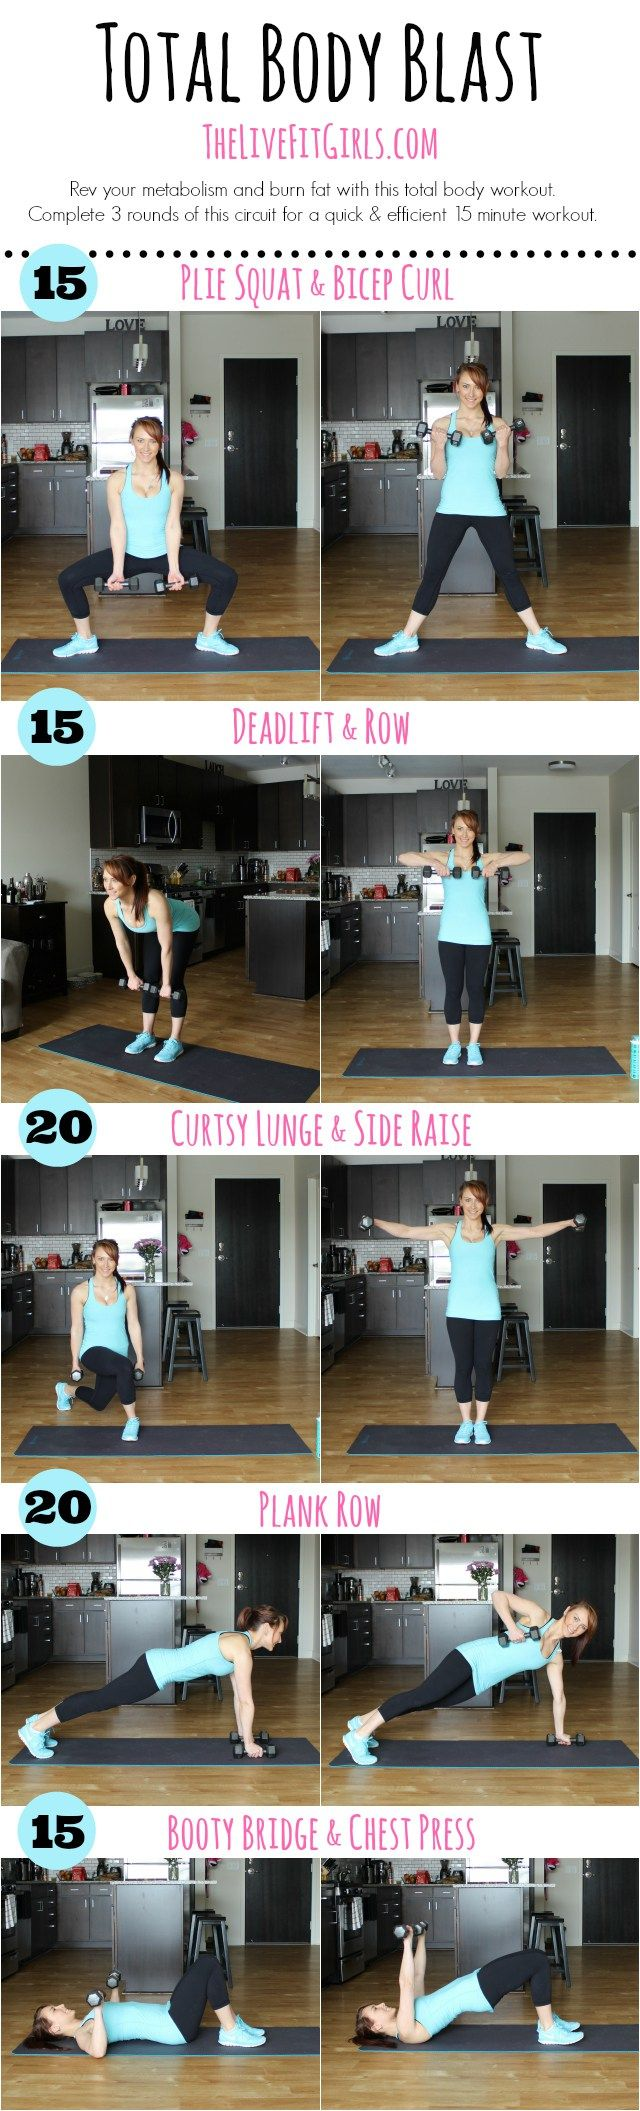 Compound exercise moves. (Ignore the clickbait-y fitness language from this site; the printable is the only decent part.)